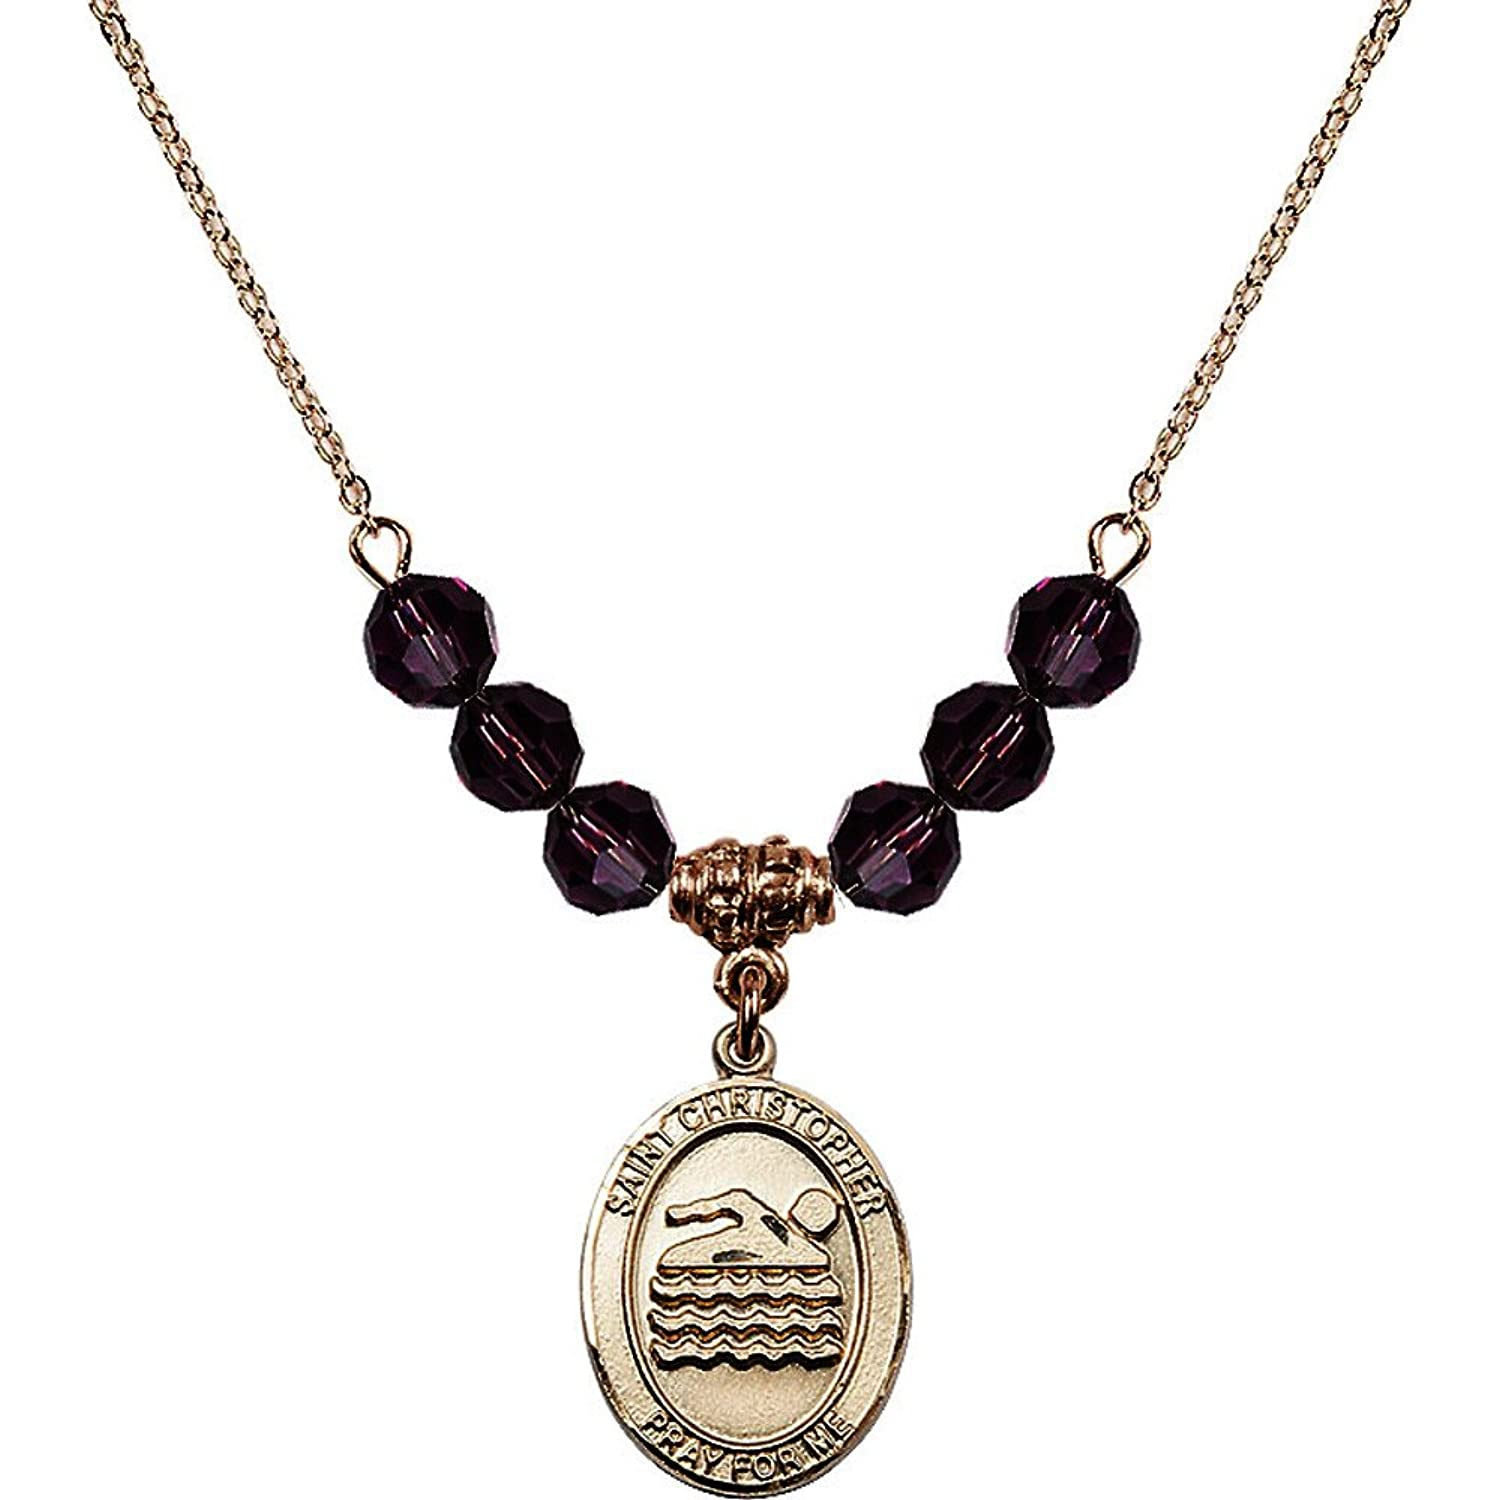 18-Inch Hamilton Gold Plated Necklace with 6mm Purple February Birth Month Stone Beads and Saint Christopher/Swimming Charm